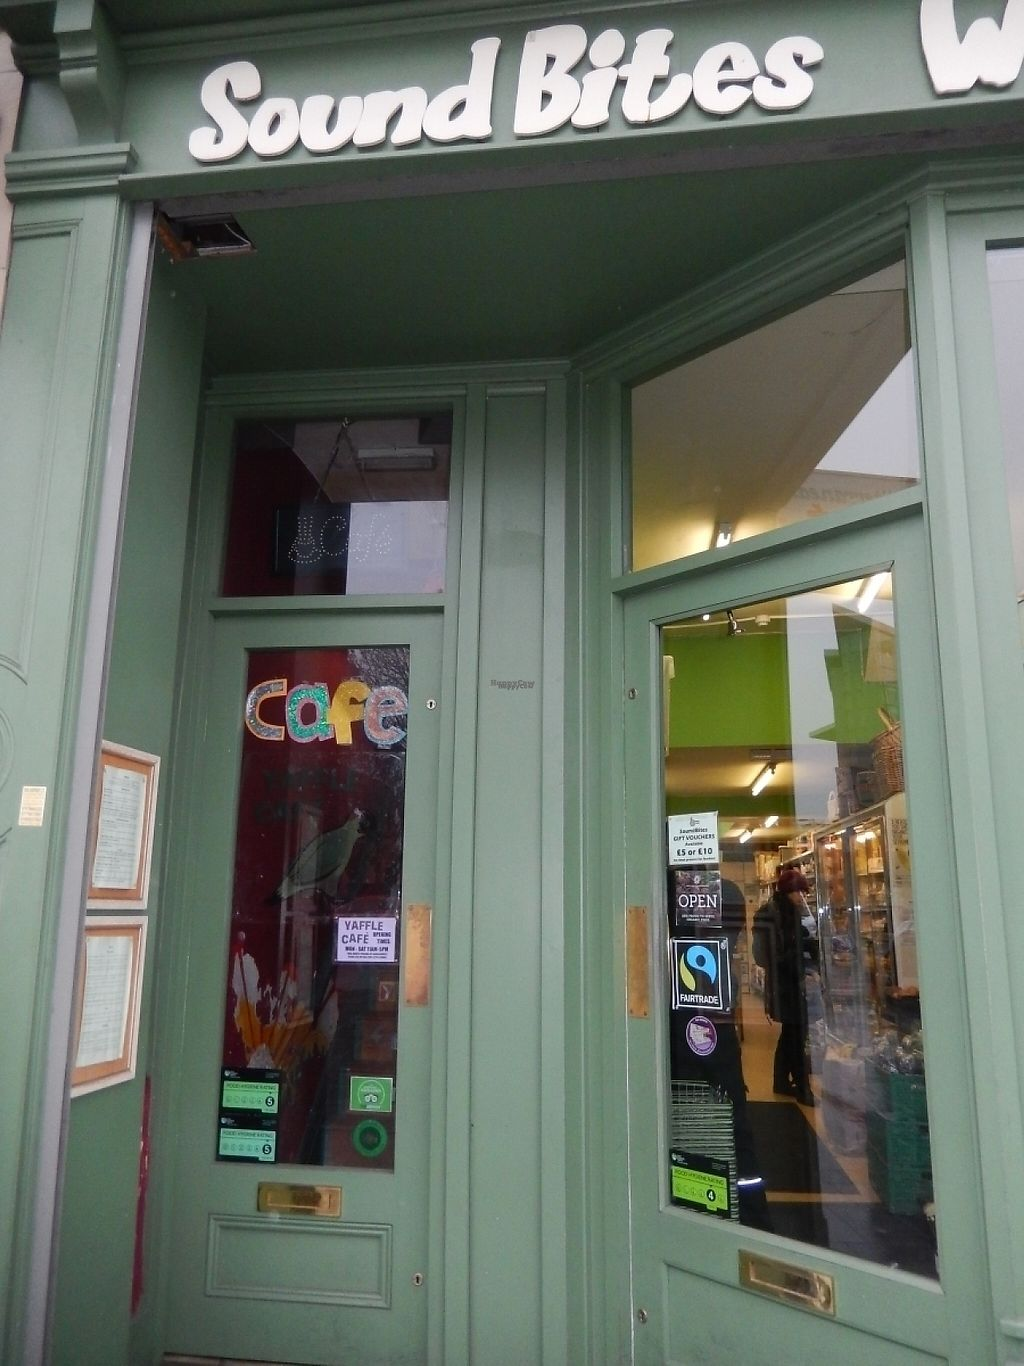 "Photo of Yaffle Cafe and Bookshop  by <a href=""/members/profile/CLRtraveller"">CLRtraveller</a> <br/>entrance is to left of Sound Bites healthfood store, go up the stairs <br/> January 26, 2017  - <a href='/contact/abuse/image/22048/217048'>Report</a>"